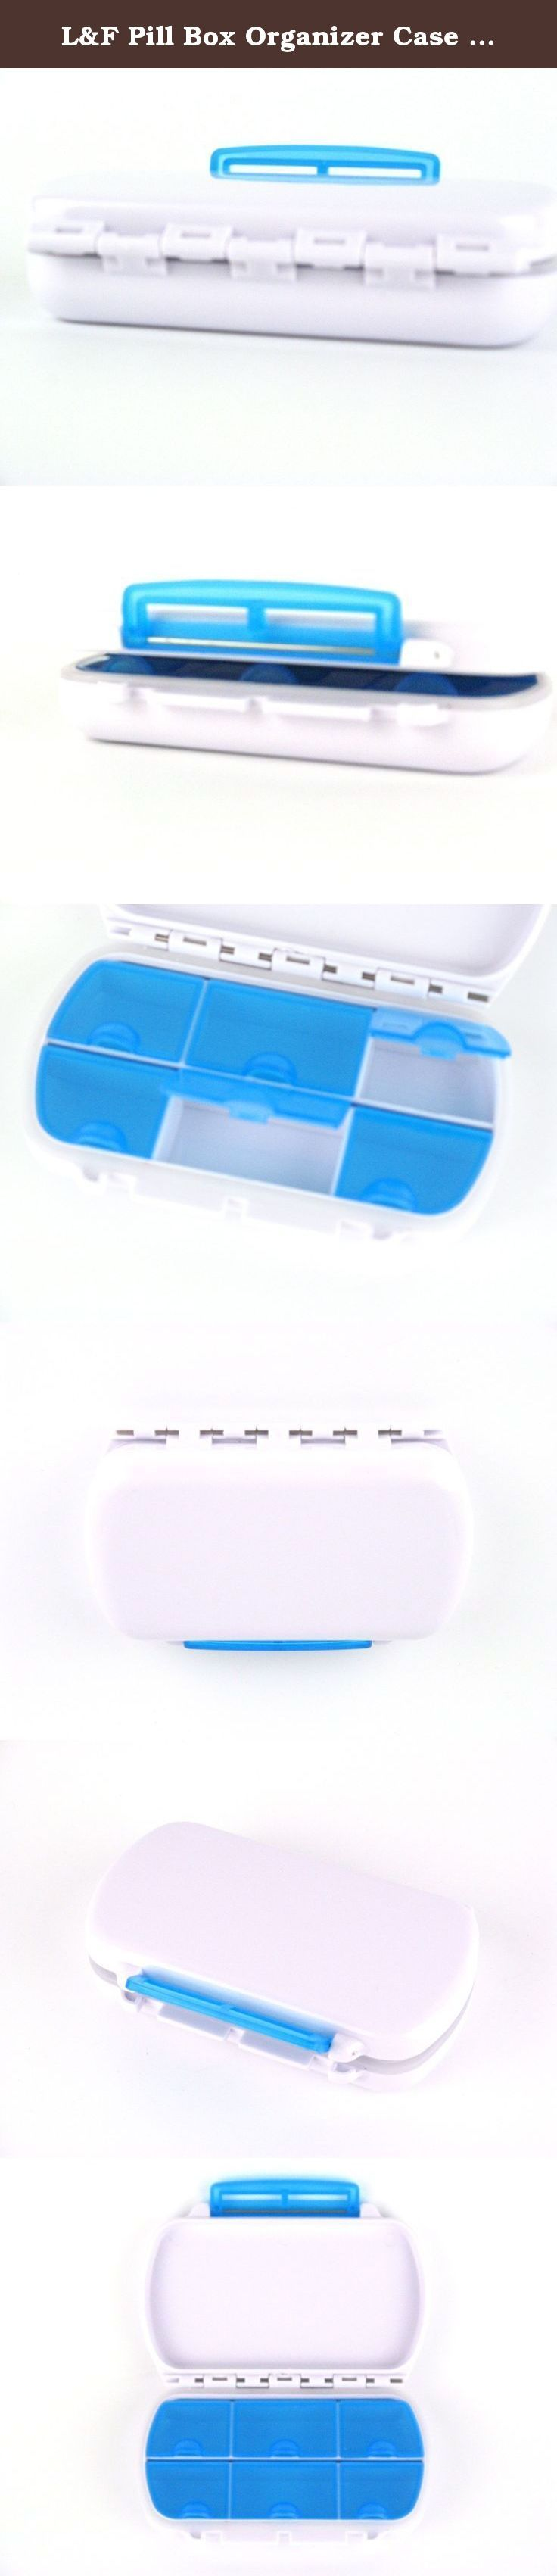 L&F Pill Box Organizer Case 6 Cells,Plastic(Blue). Specification Name: Travel 6 Compartment Pill Case Holder Brand: L&F Country: China Material:100%polypropylene(PP) Size:4.7*3*1 inch Color:blue,green,red,yellow,orange Occasions:travel,home Target Audience: all Product Features Good quality PP material,solidly and environmently,without any odor. Easy to use:every compartment has latch,it's convenient to open and secure closed,the lids can avoid pills spill all over the place, at the same...